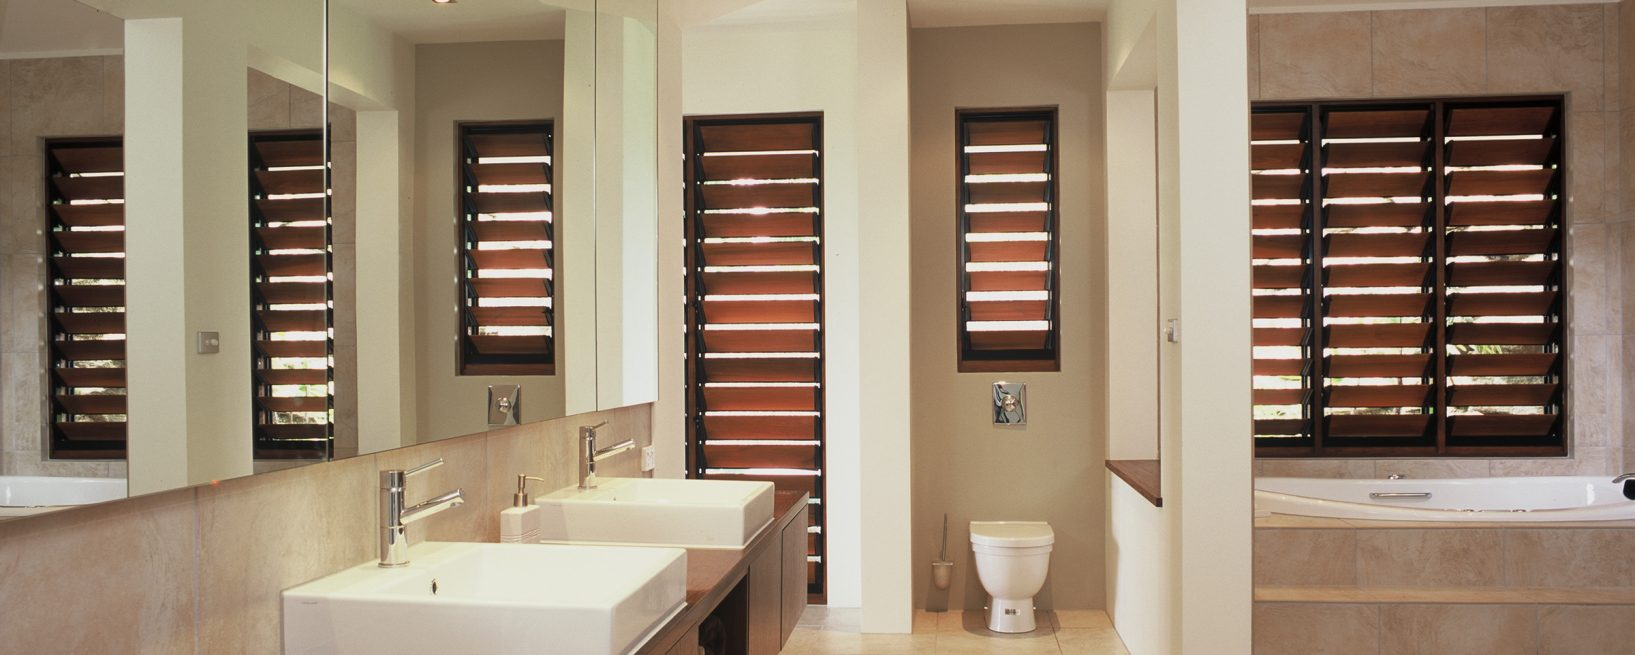 Brisbane Bathroom Renovations Australia